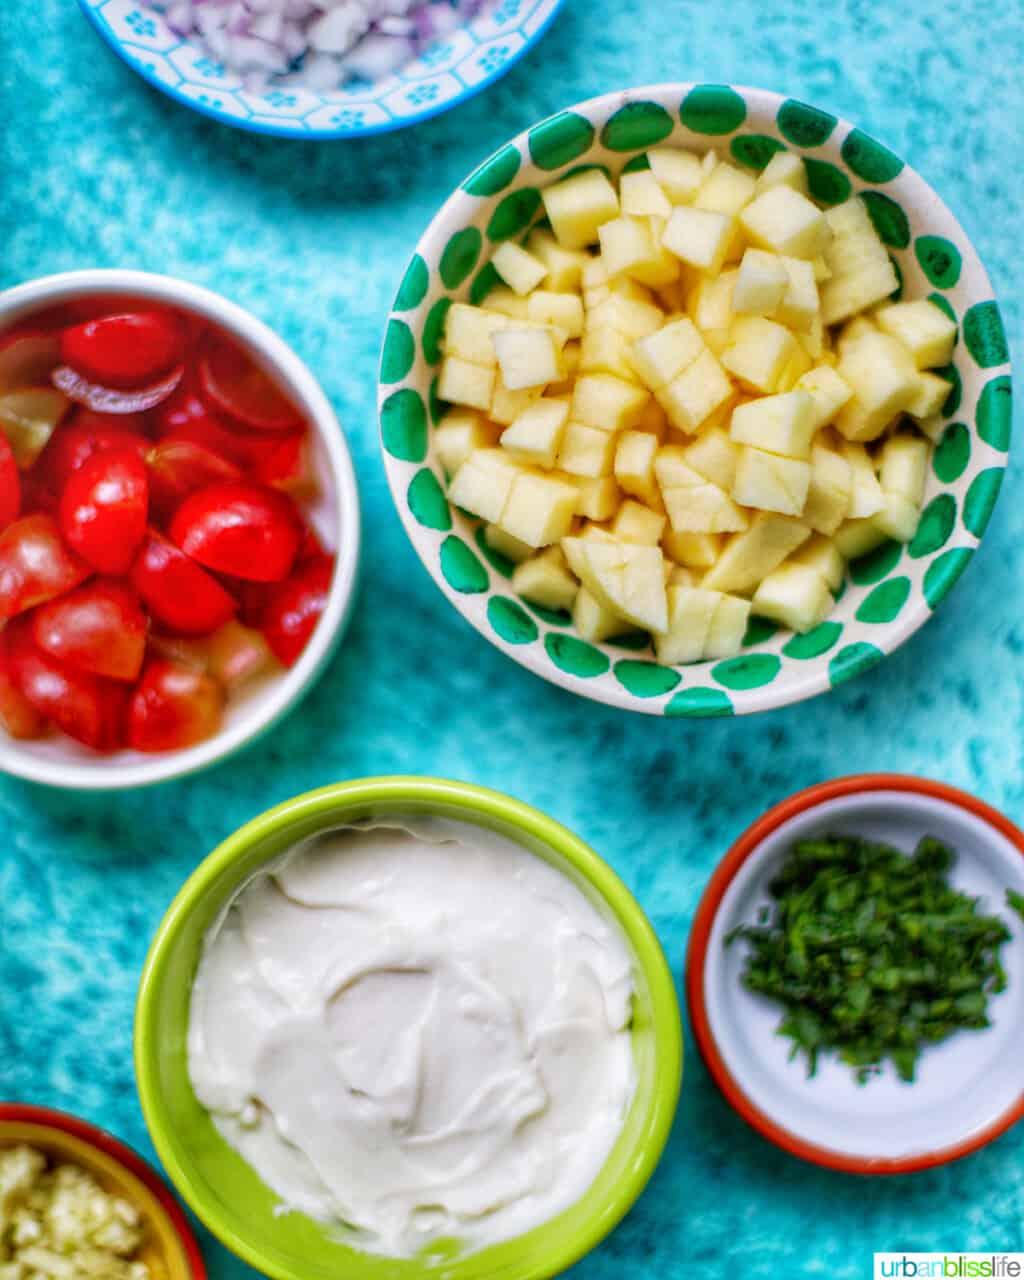 apples grapes mayo to make chicken salad sandwiches